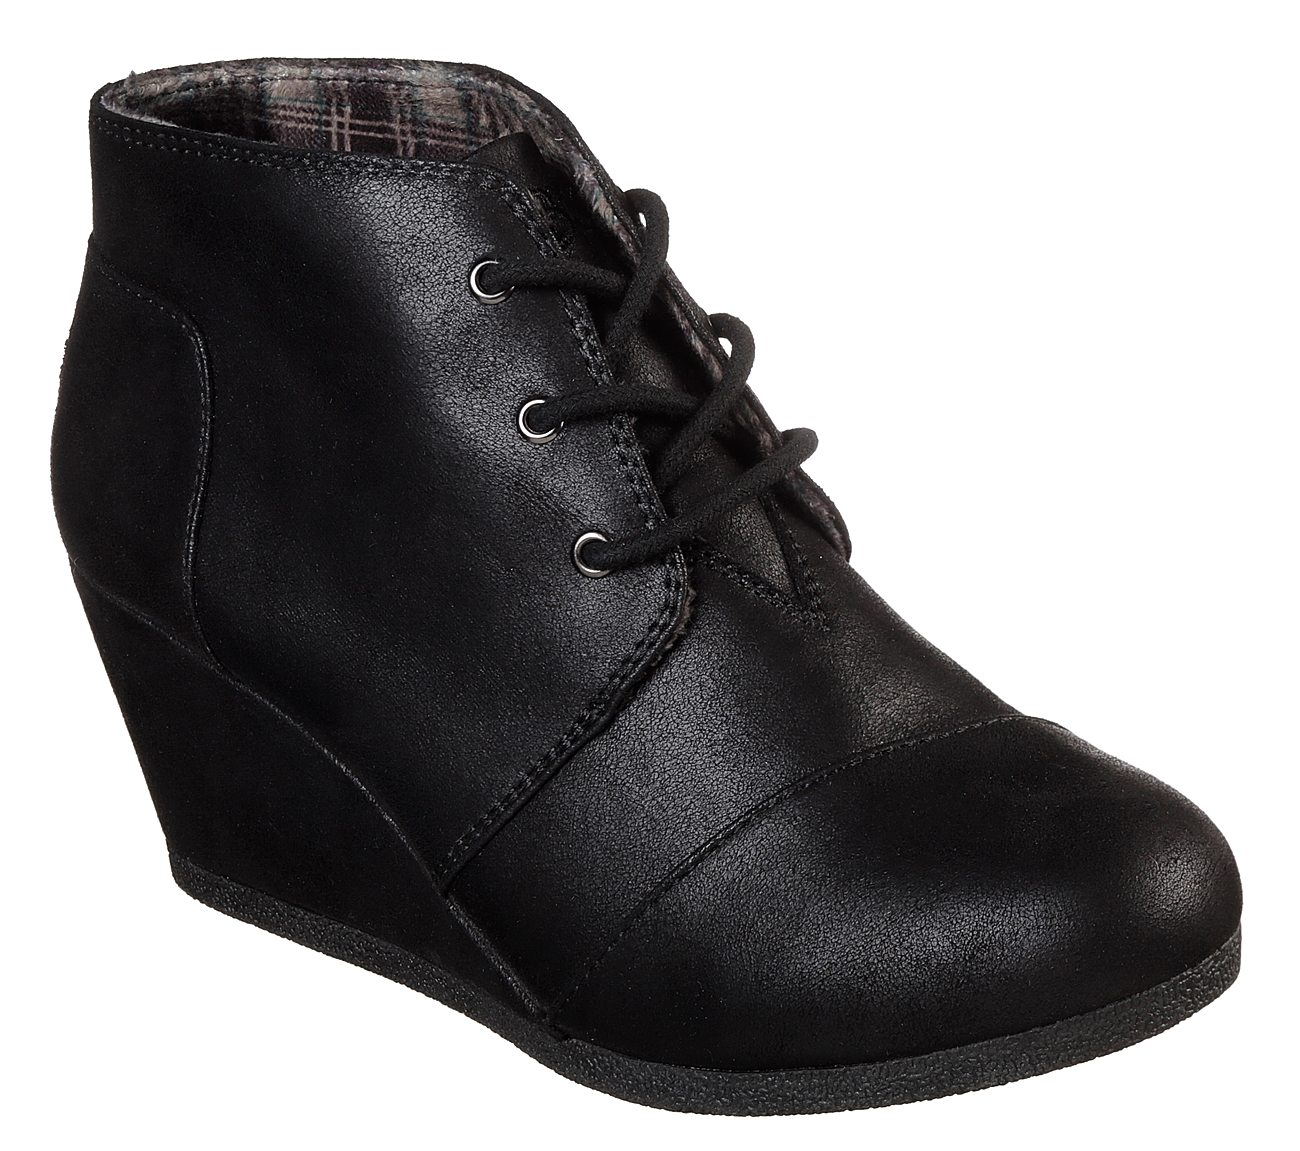 bobs shoes boots